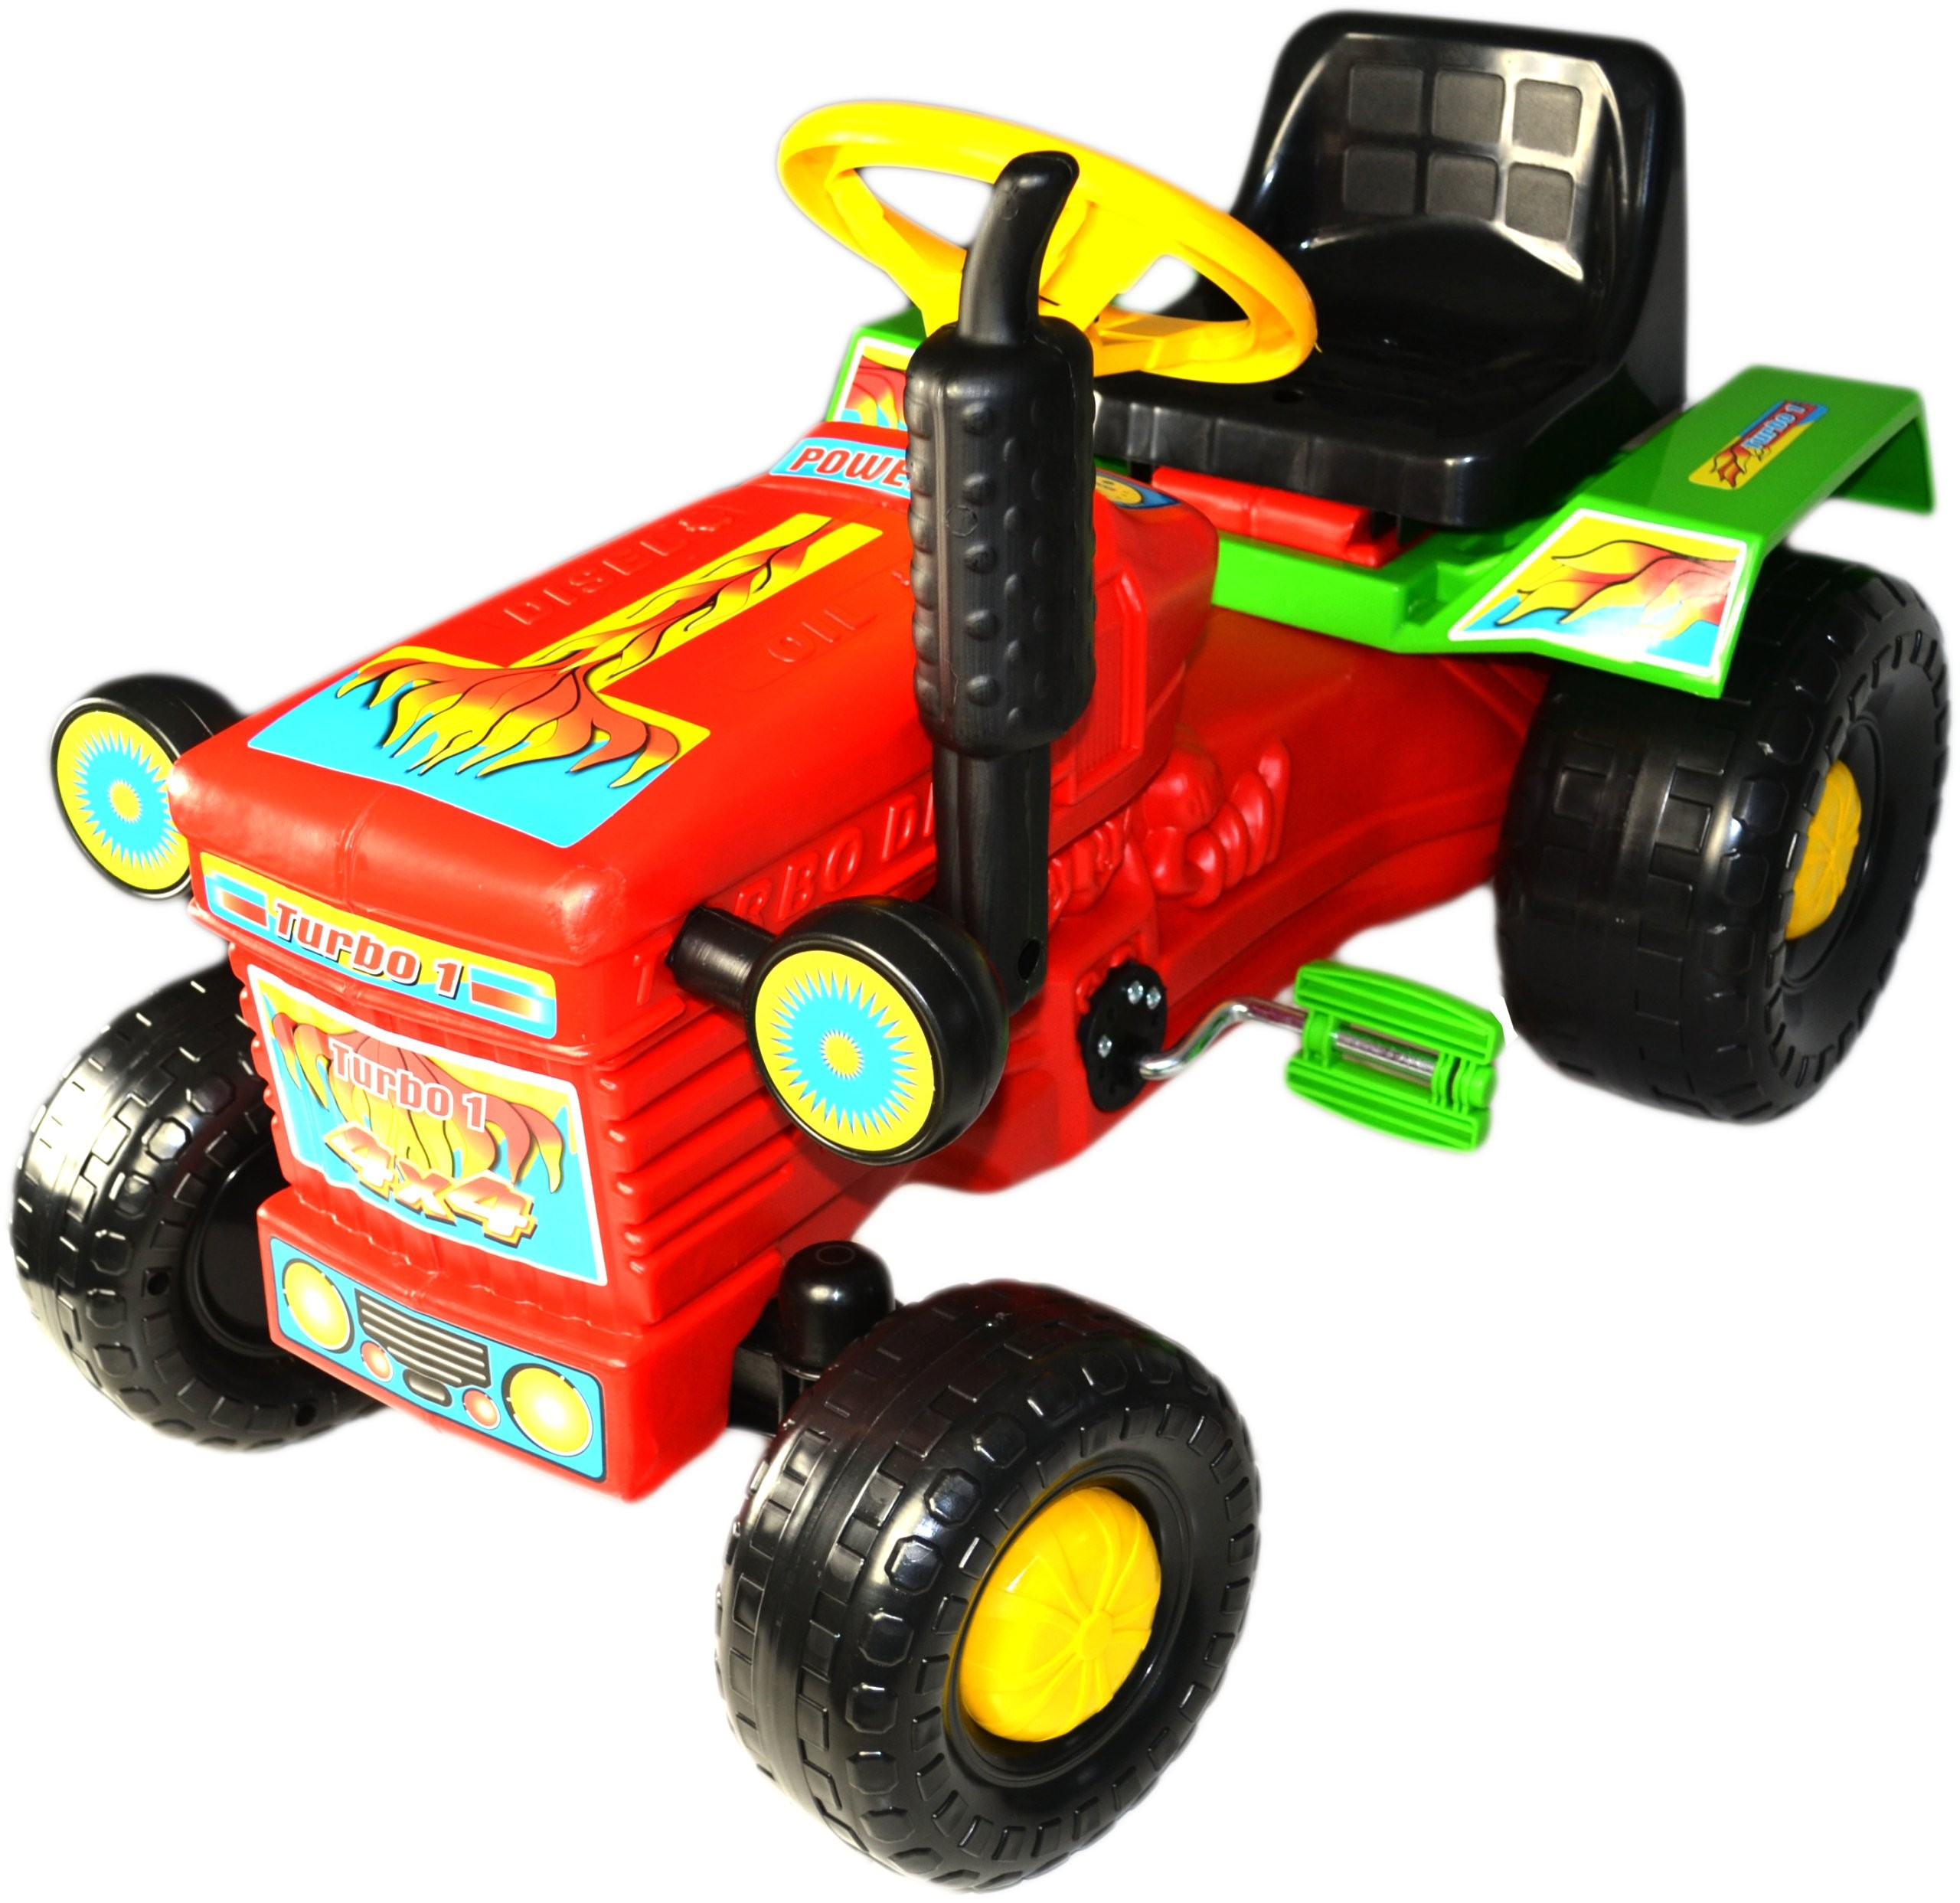 Super Plastic Toys - Tractor cu pedale Turbo red